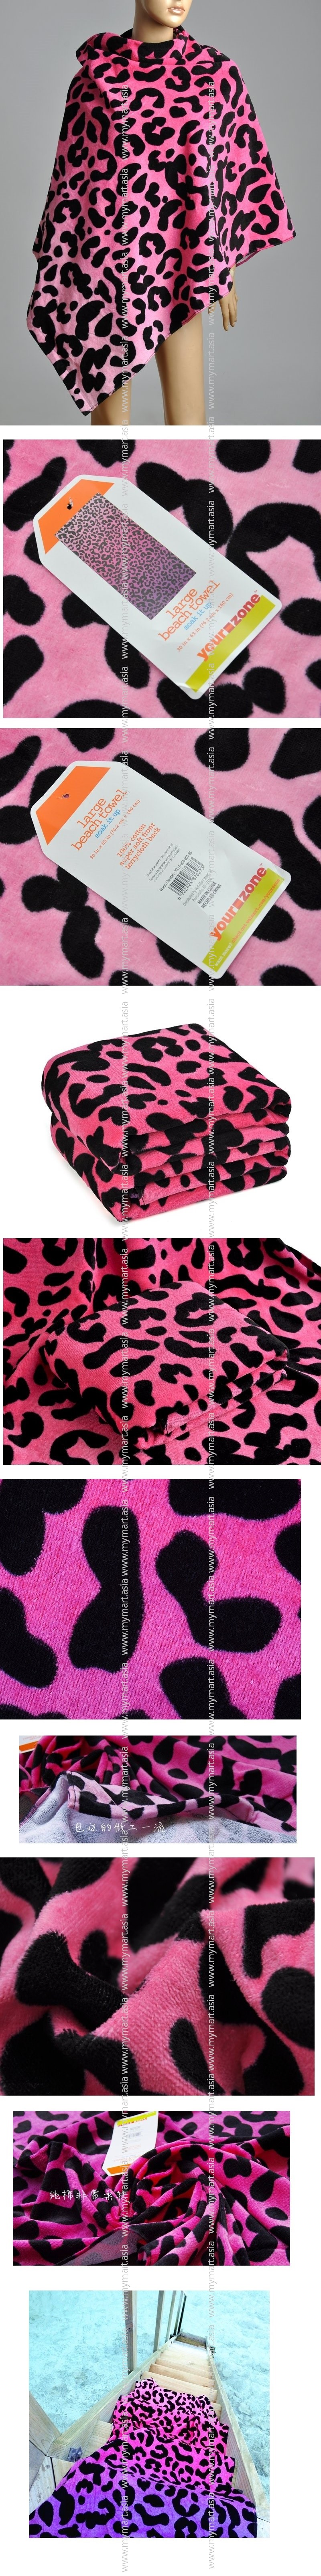 Clearance Limited Leopard First Grade Cotton Large Beach Towel 160cm x 76cm